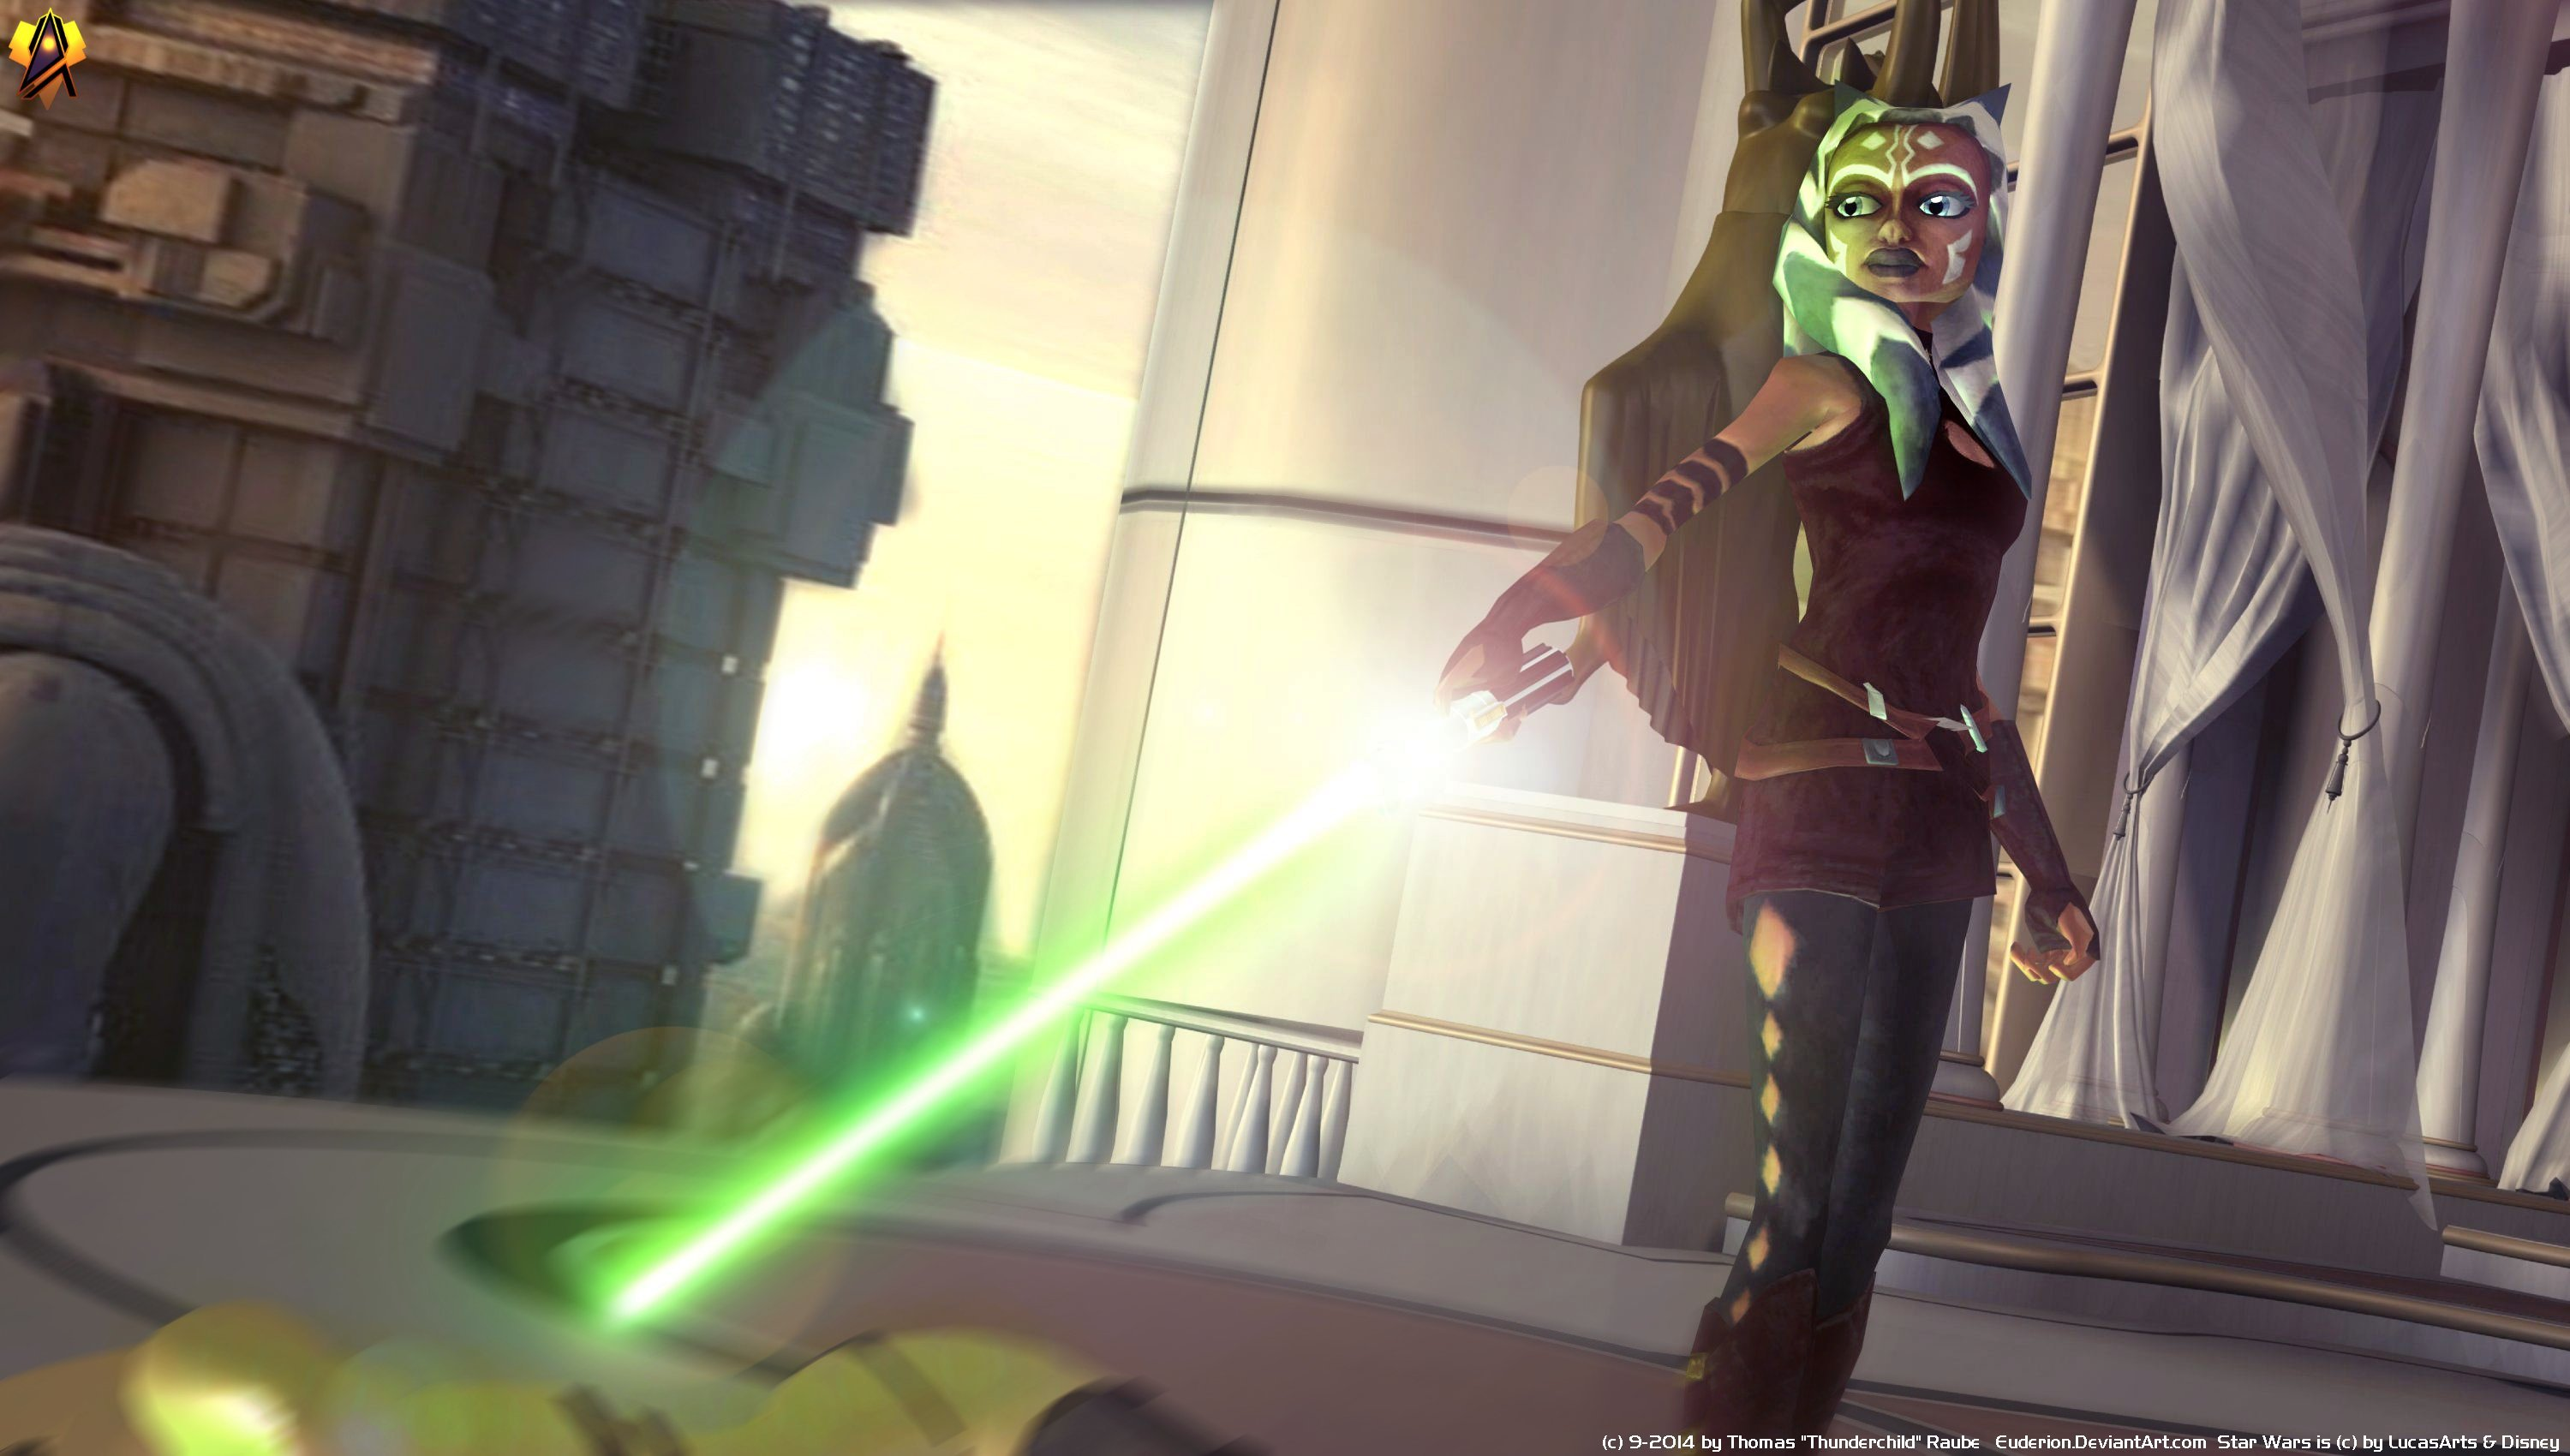 Star Wars The Clone Wars S7 3000x1700 Wallpaper Teahub Io